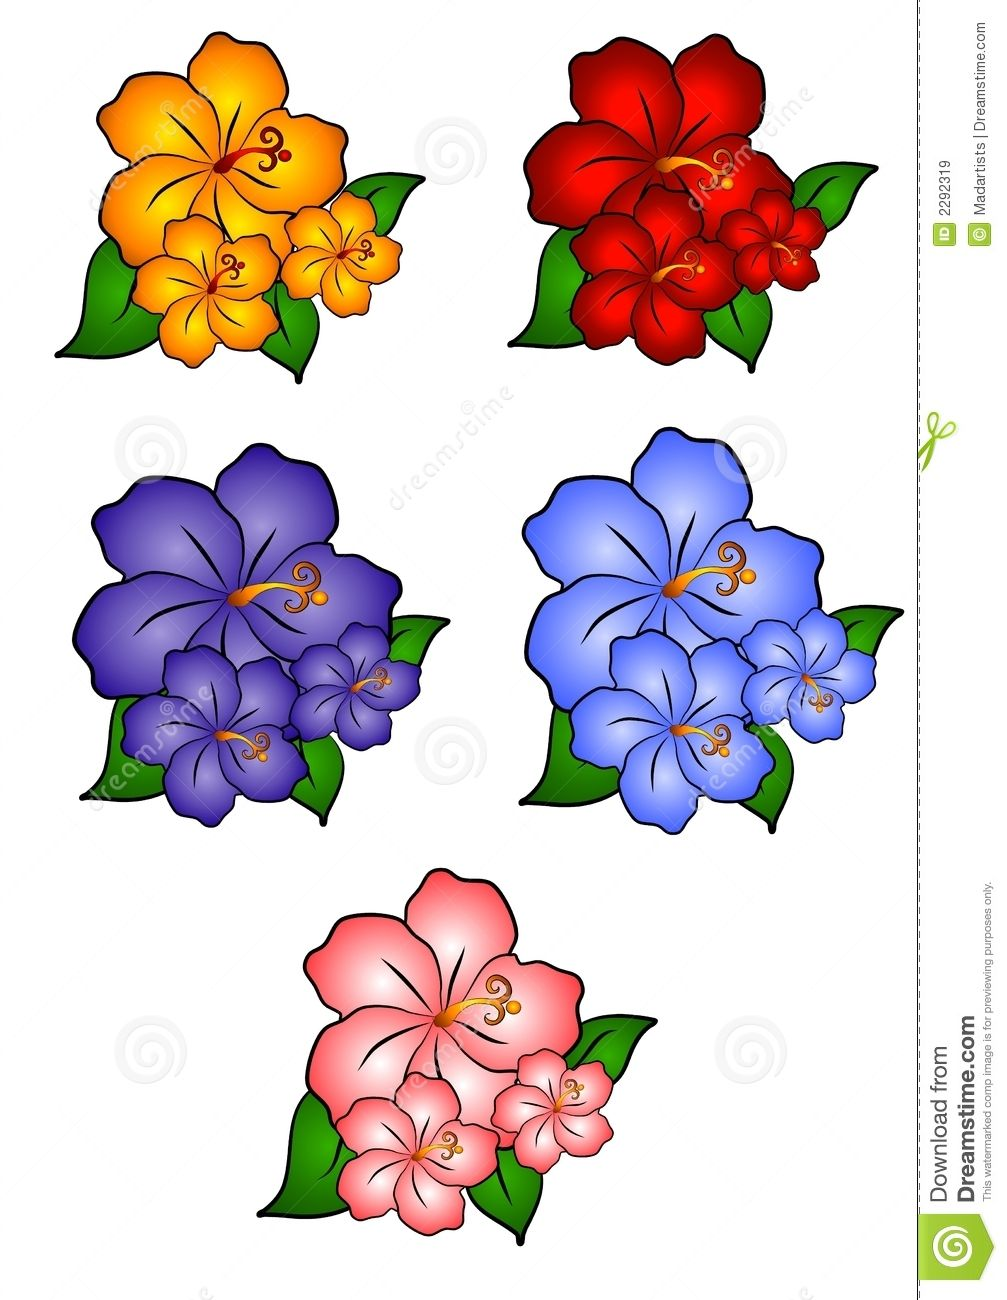 Hawaii flower border clipart black and white svg download flower clip art free | hawaiian-flower-border-clip-art-5-hawaiian ... svg download